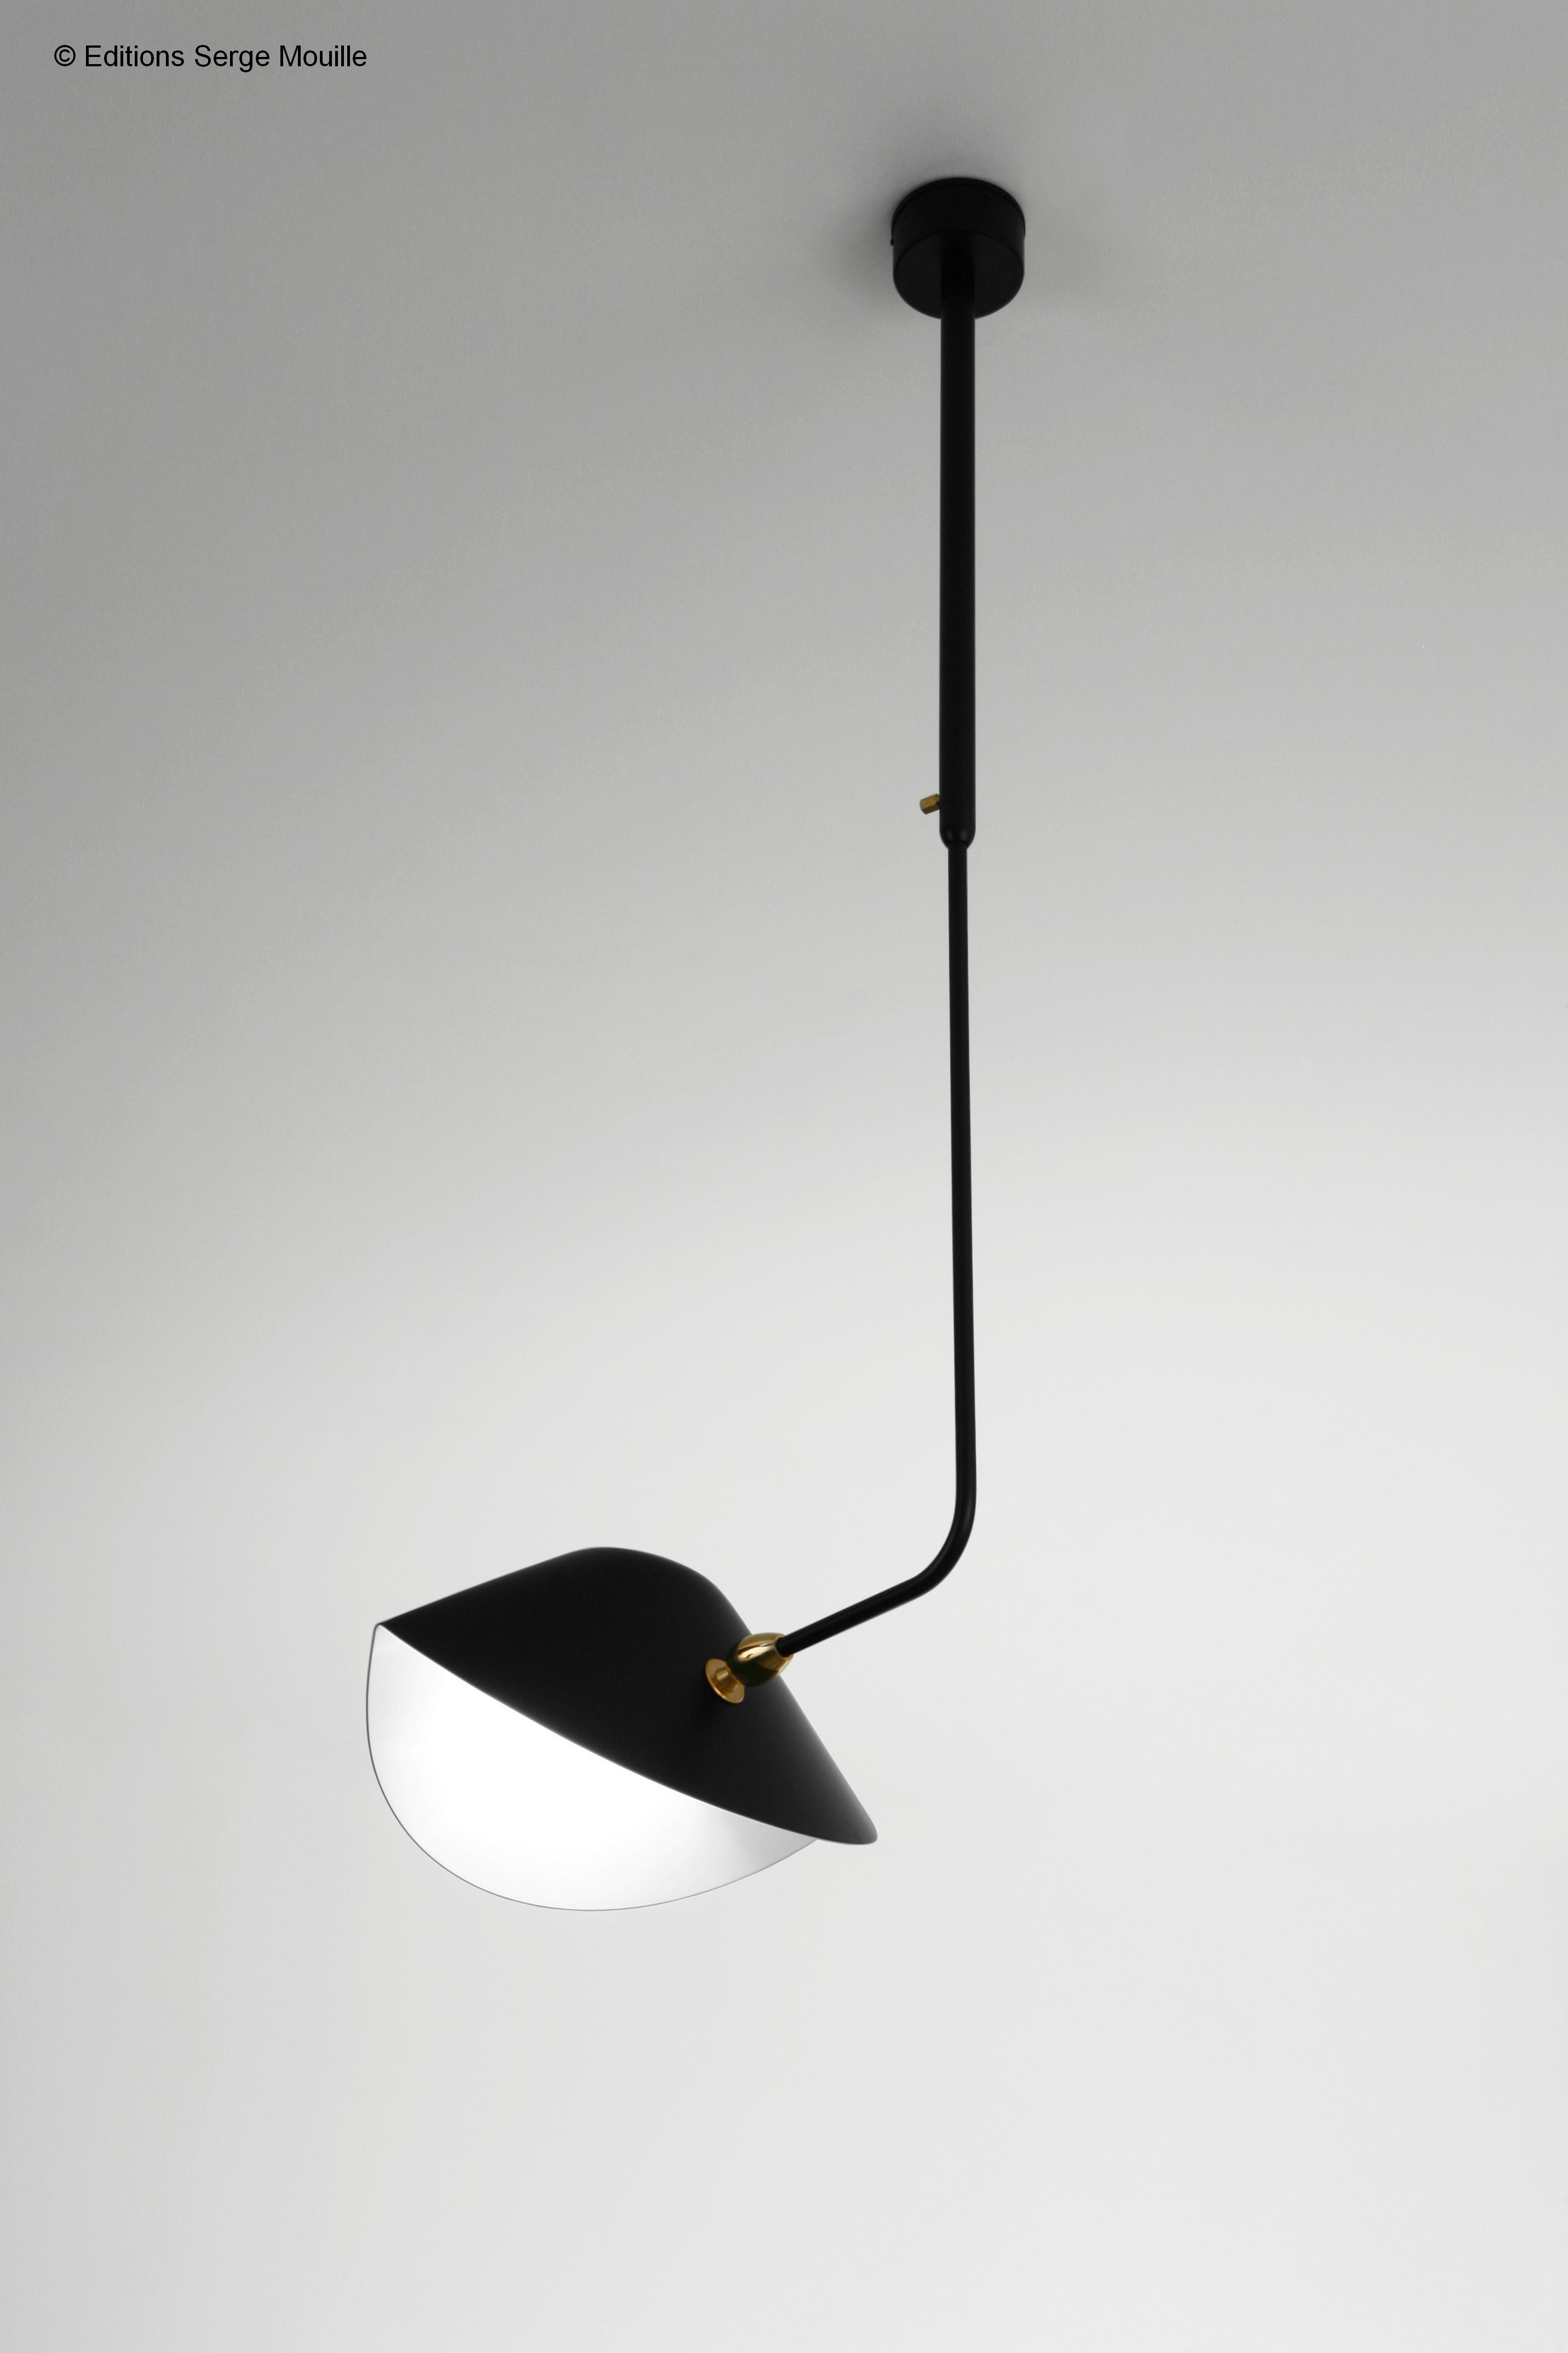 Serge mouille curved ceiling lamp bibliothque editions for sale serge mouille curved ceiling lamp bibliothque editions for sale at 1stdibs arubaitofo Choice Image